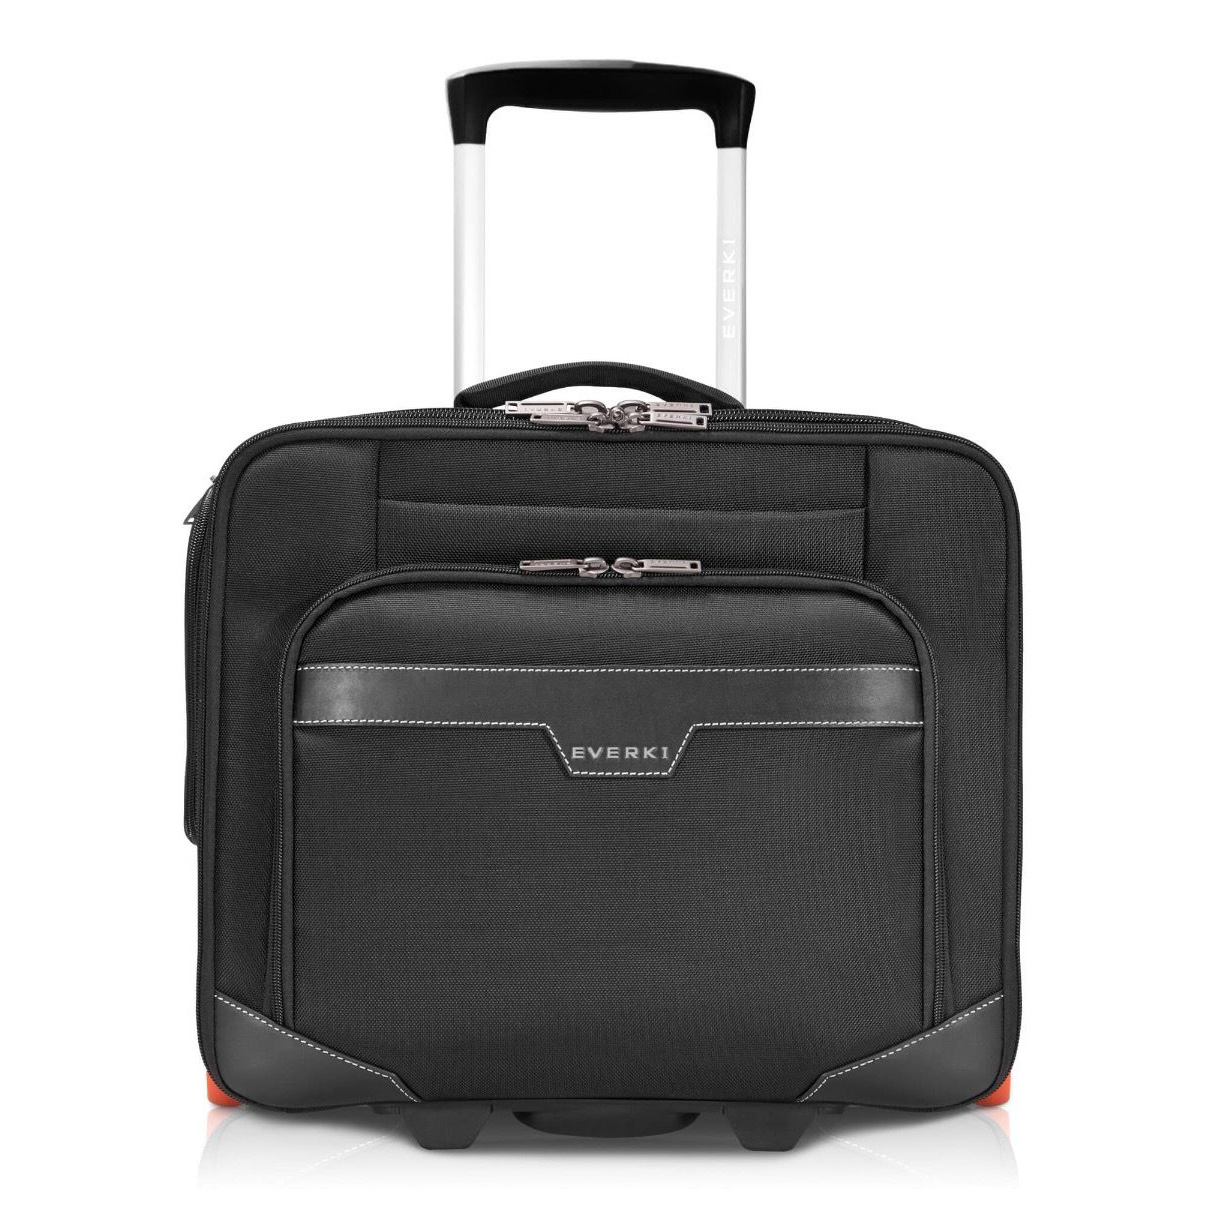 Everki 16in Journey Trolley Rolling Laptop Briefcase